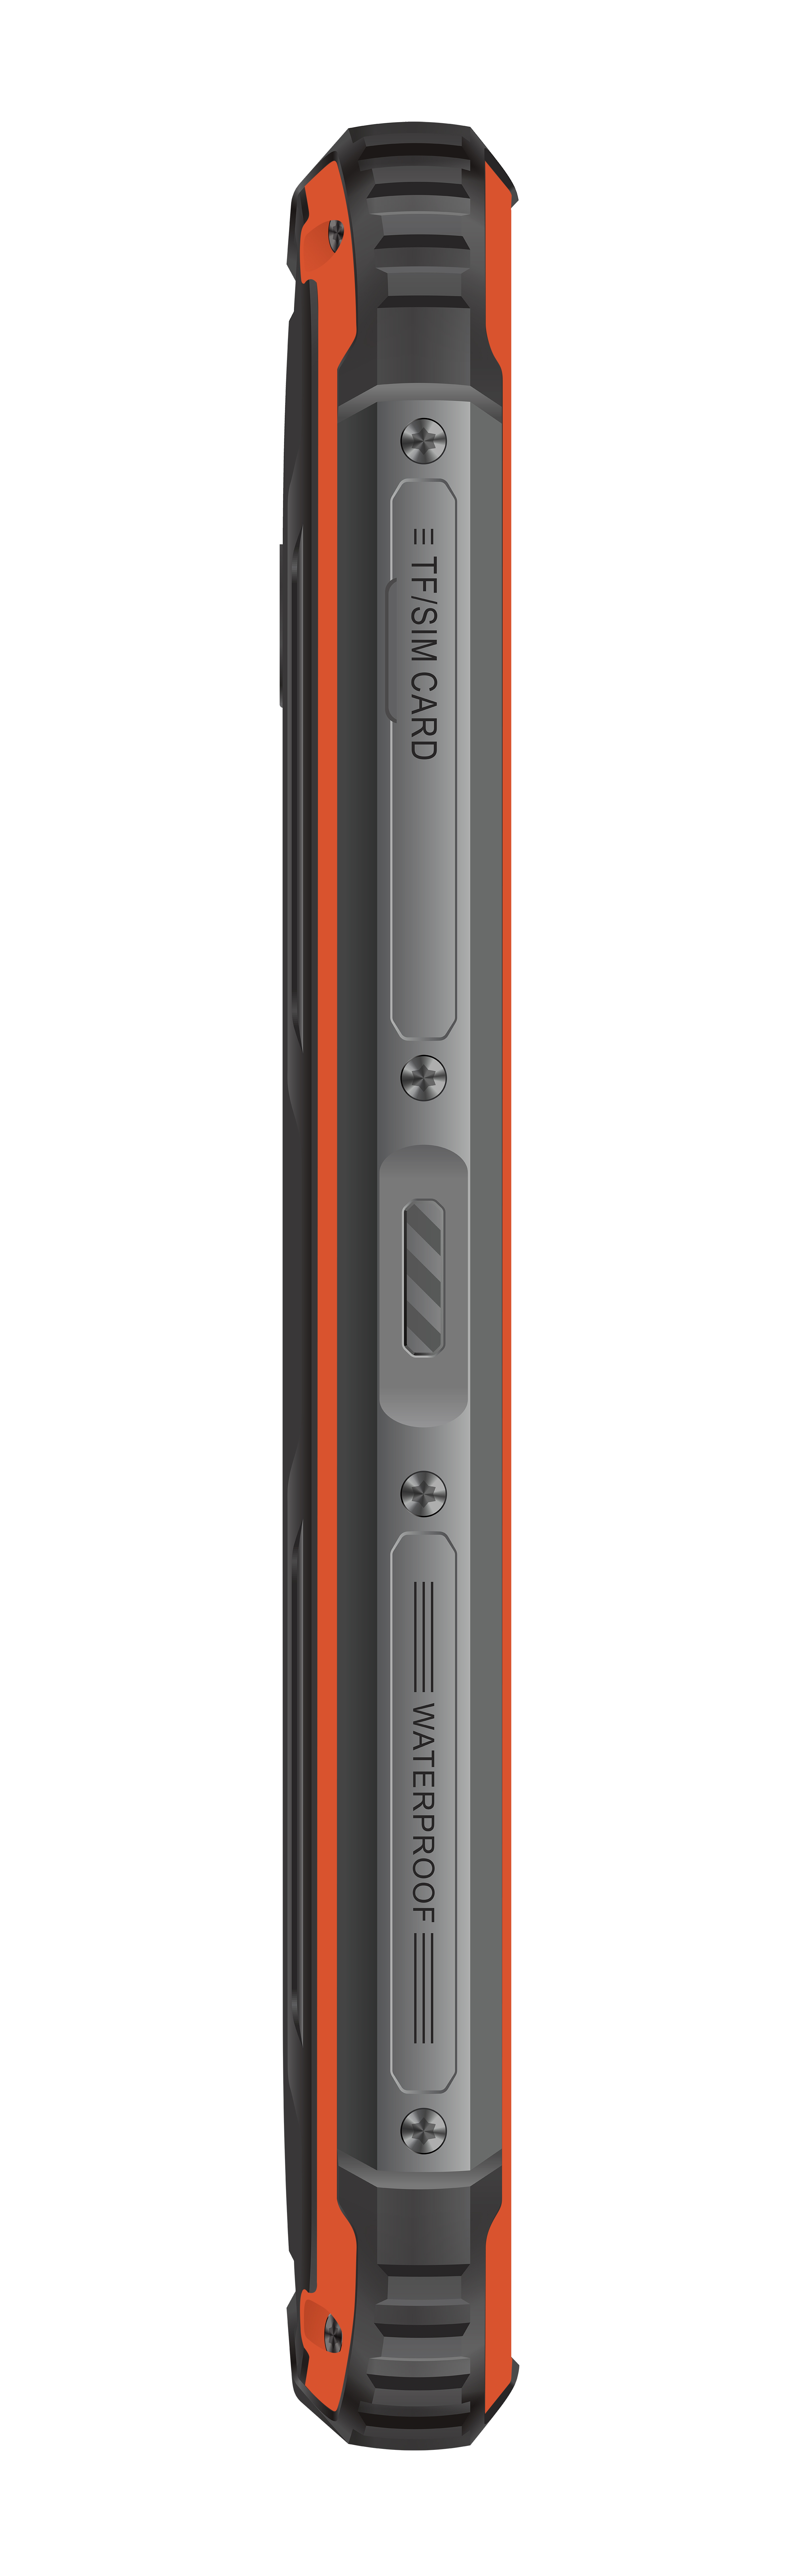 iGET BLACKVIEW GBV5900 Orange